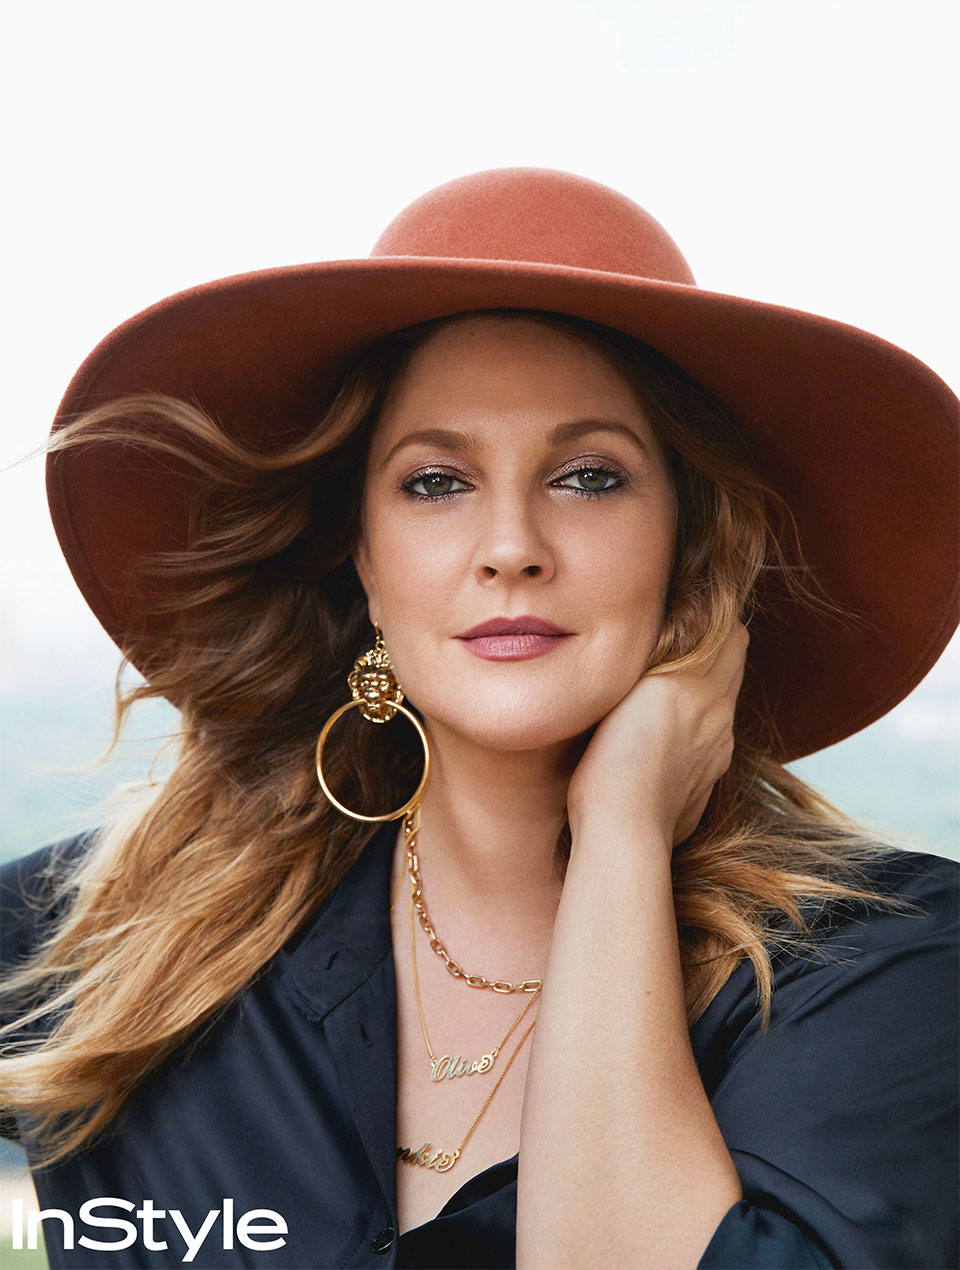 Drew Barrymore wearing a large-brimmed hat